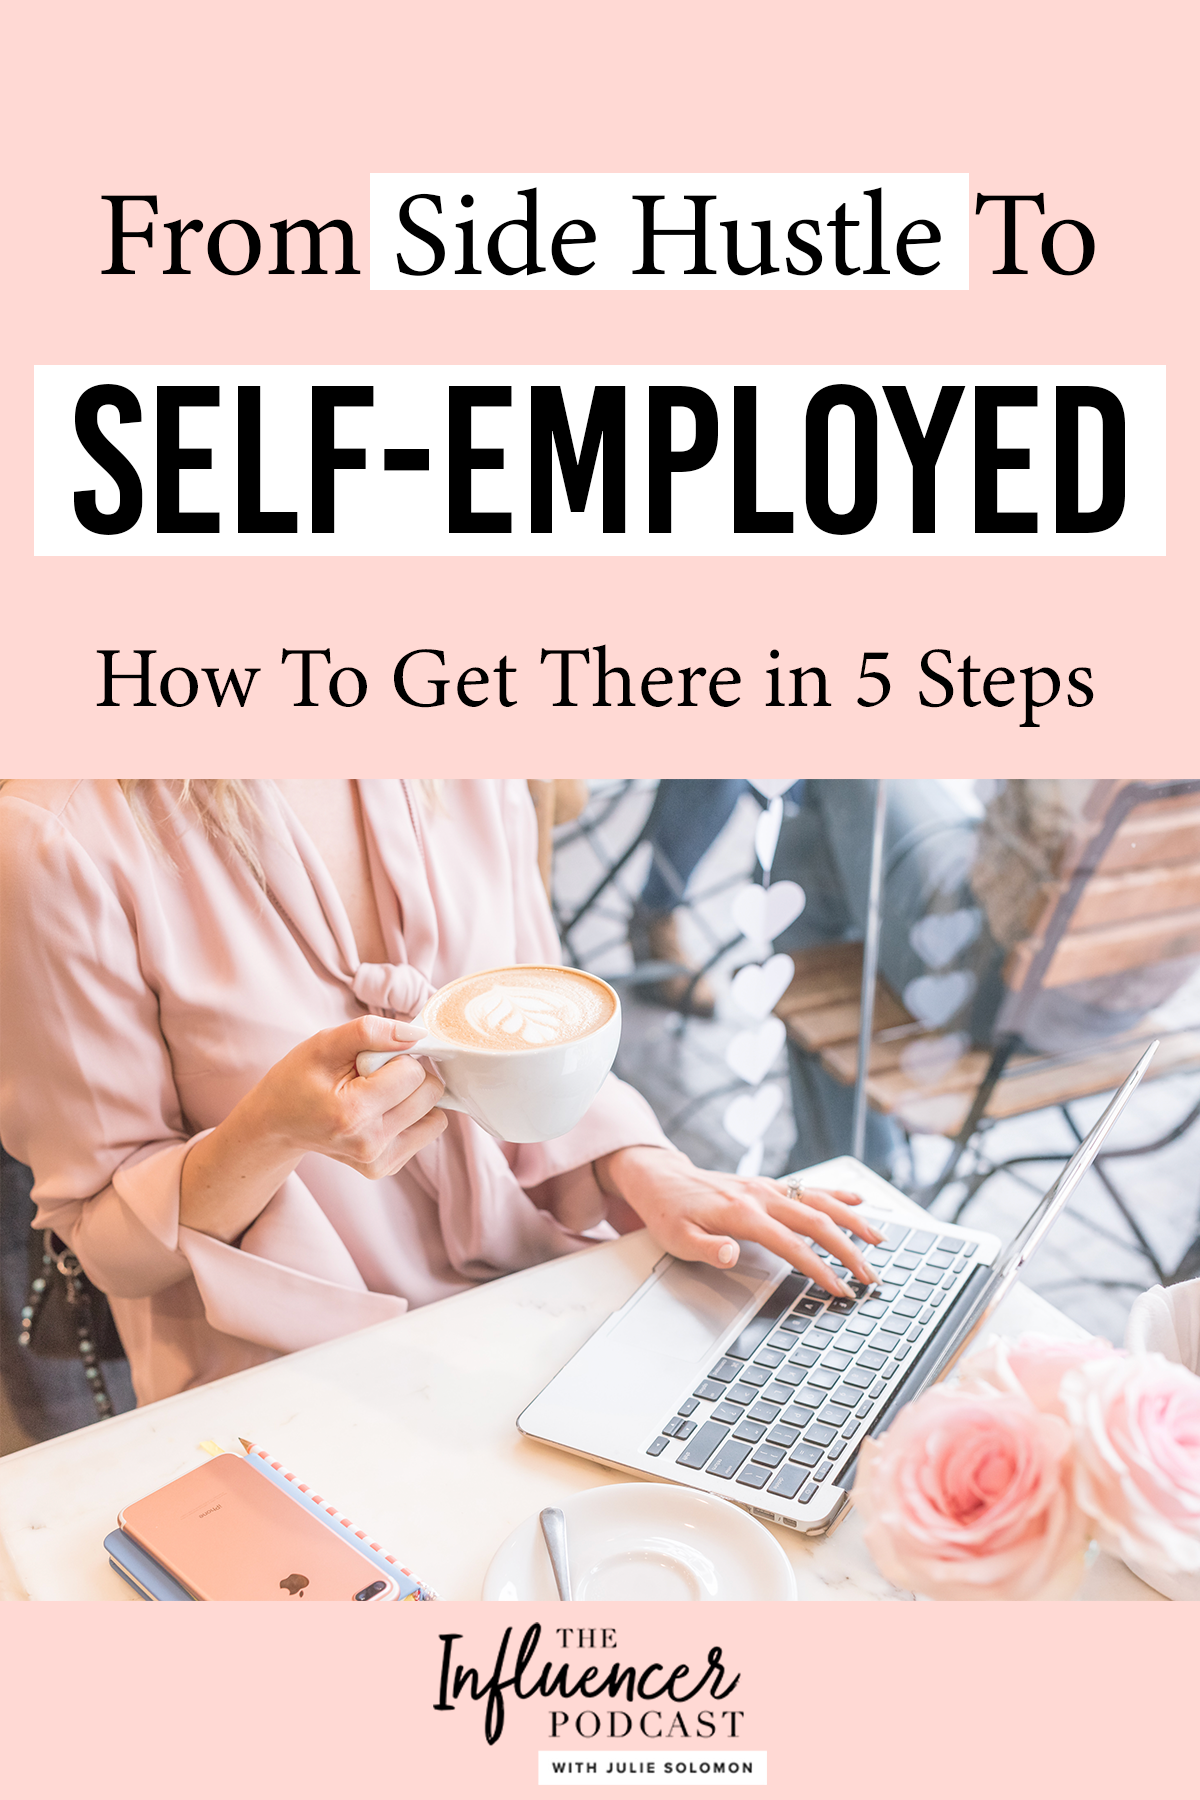 From Side Hustle To Self Employed, how to become self-employed in 5 simple steps. Listen to this Episode of The Influencer Podcast Insights with Julie Solomon #SideHustle #smallBusimess #SelfEmployment #selfEmployed